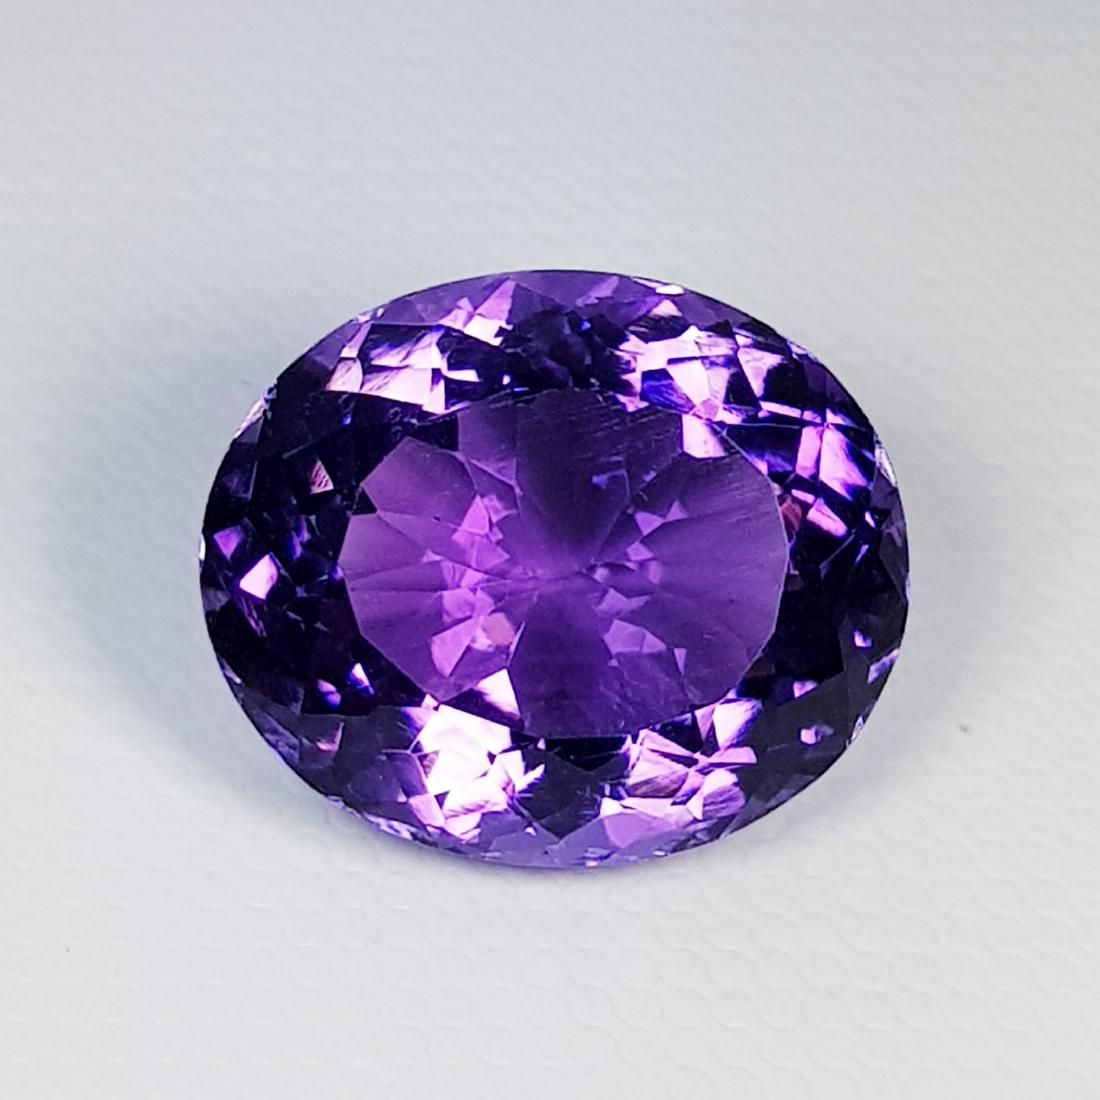 Natural Amethyst Oval Cut 12.05 ct